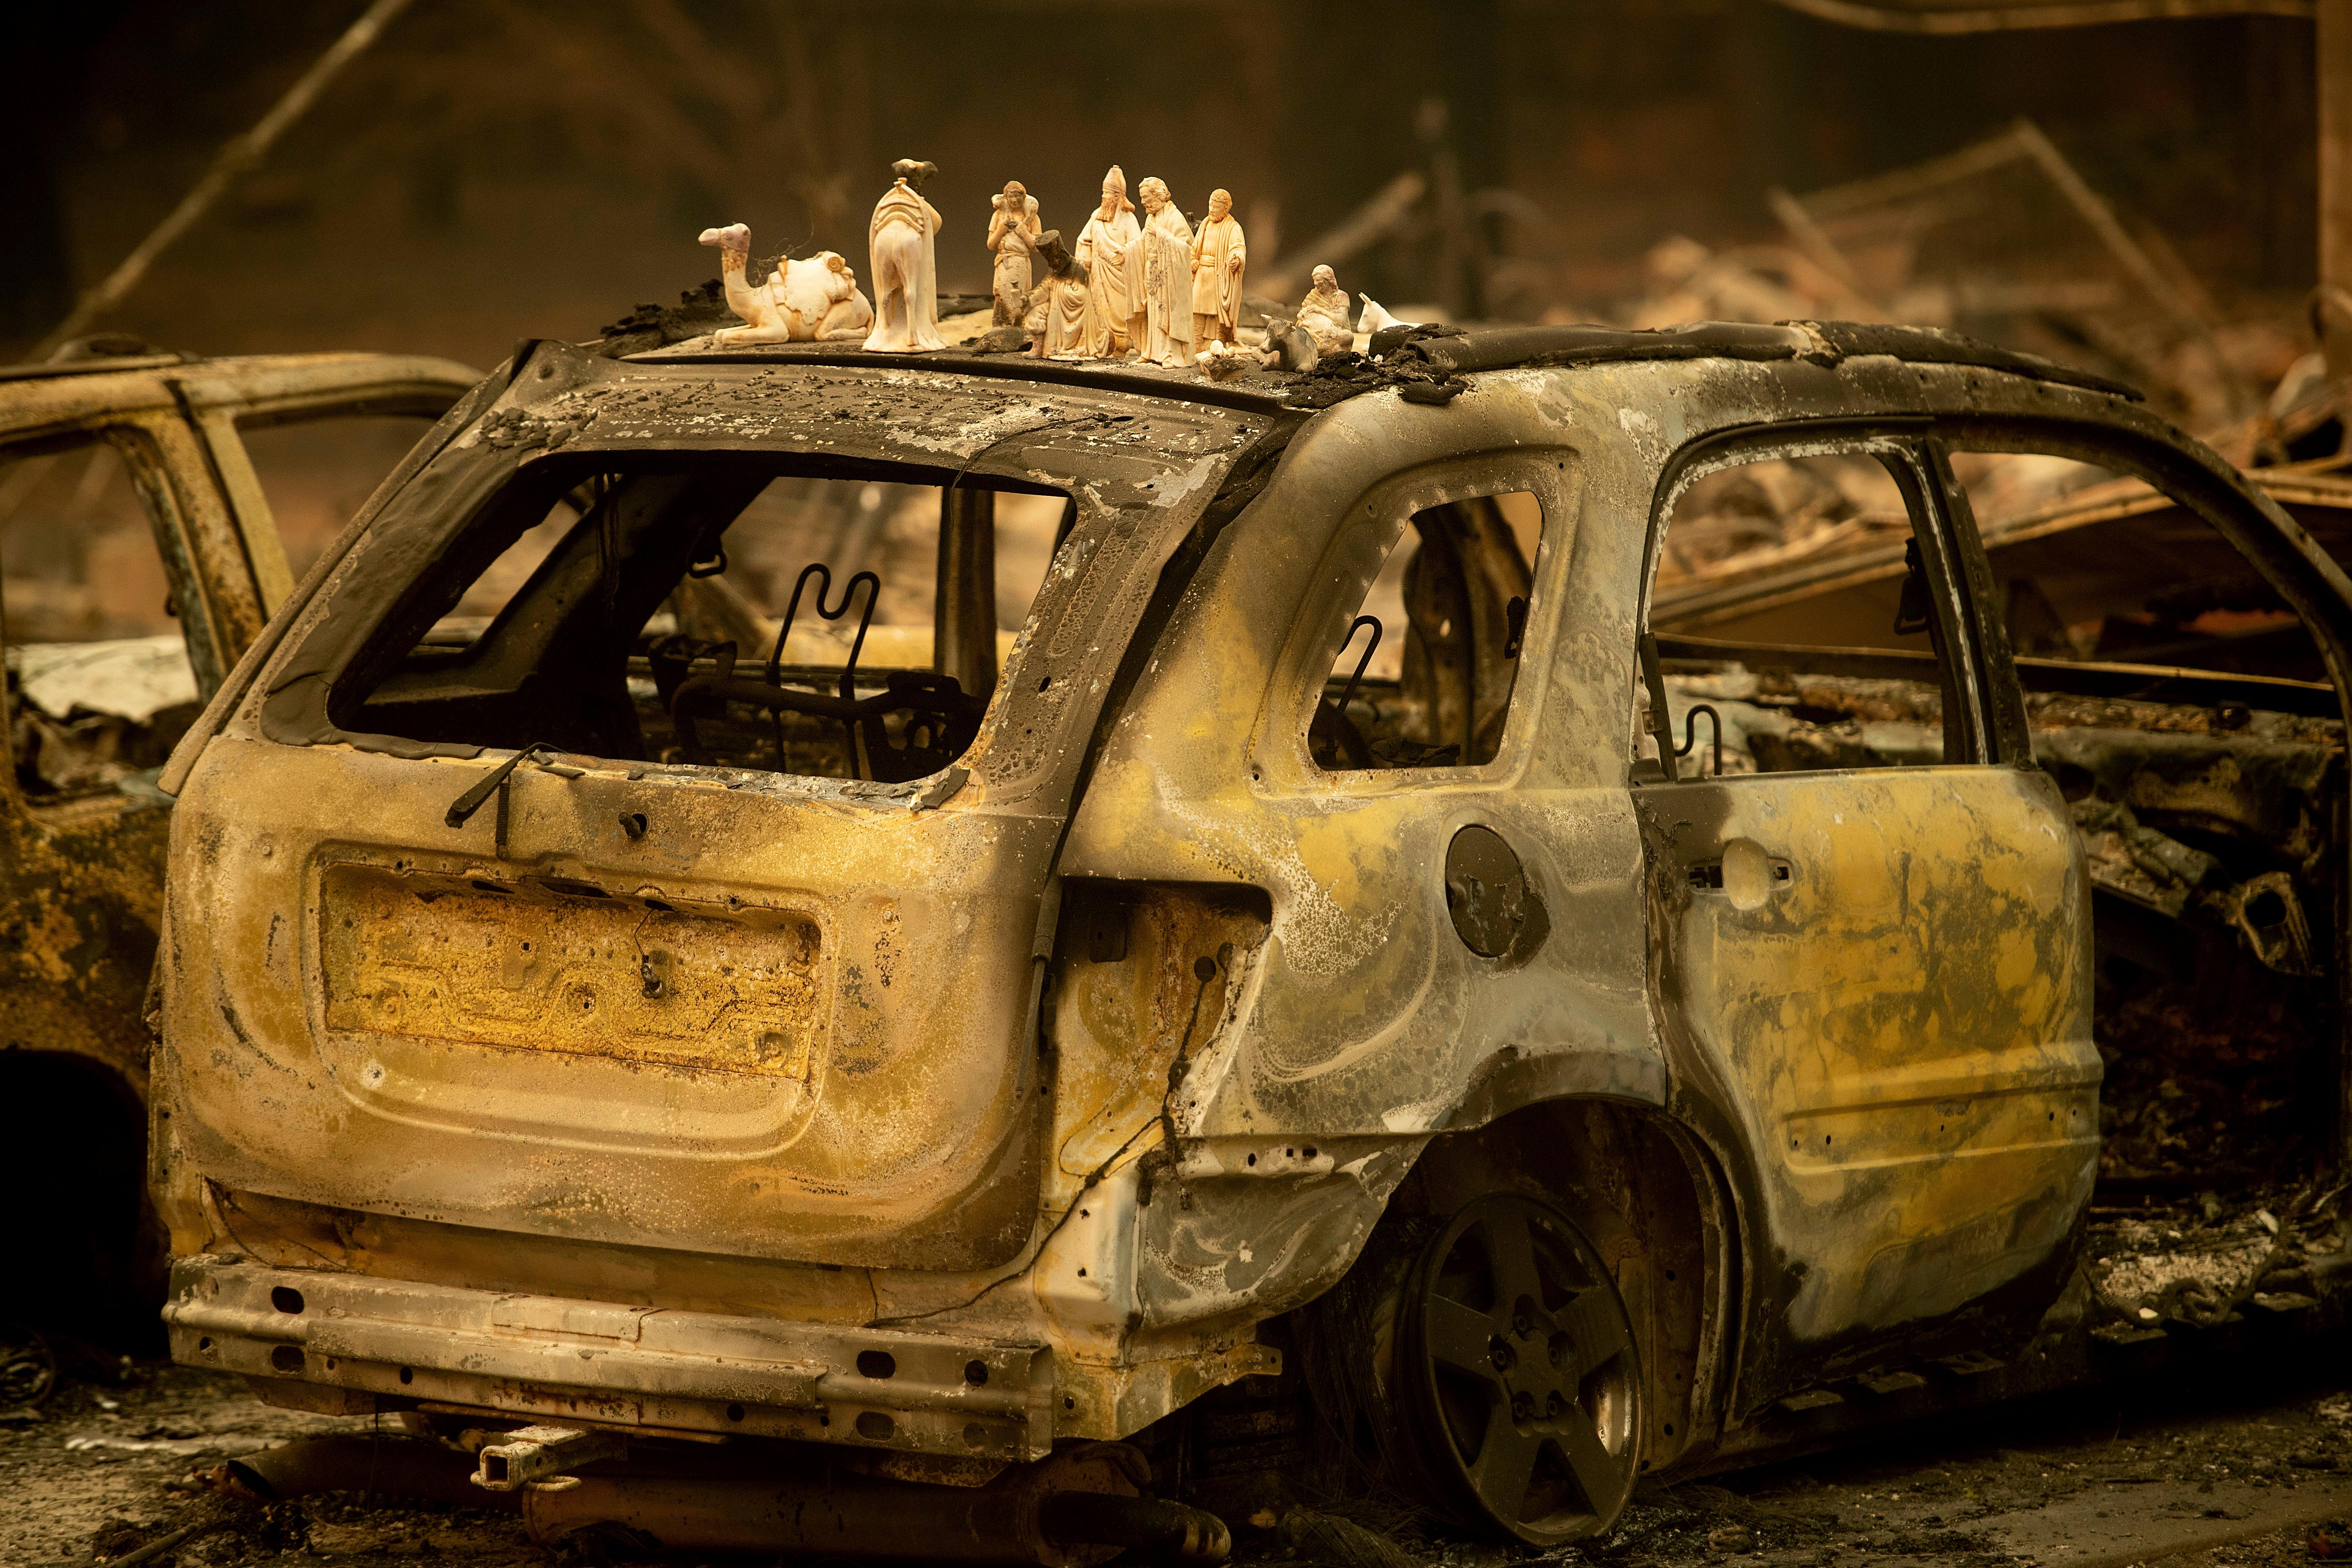 Following the Camp Fire, figurines rest atop a scorched car on Pearson Road, Monday, Nov. 12, 2018, in Paradise, Calif. (AP Photo/Noah Berger)